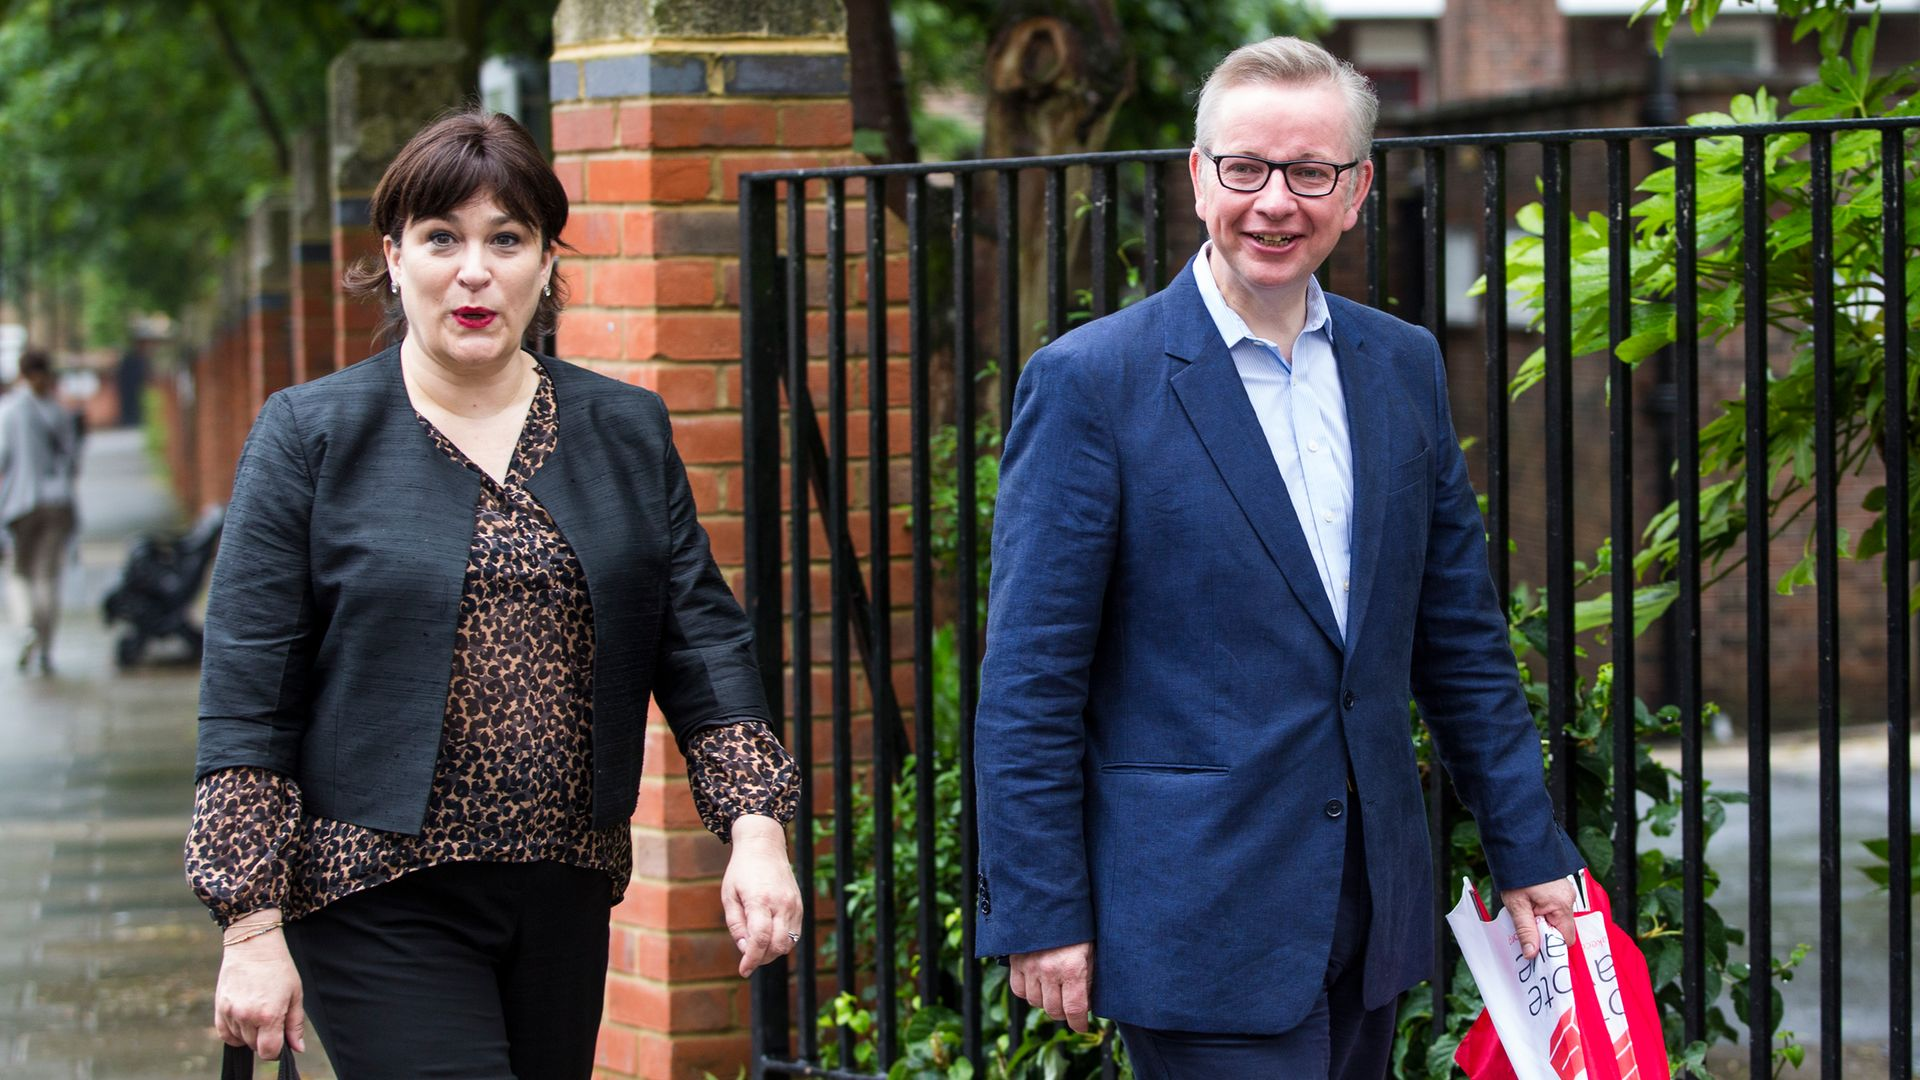 Michael Gove and Sarah Vine, seen in June 2016 - on their way to vote in the Brexit referendum - Credit: Getty Images